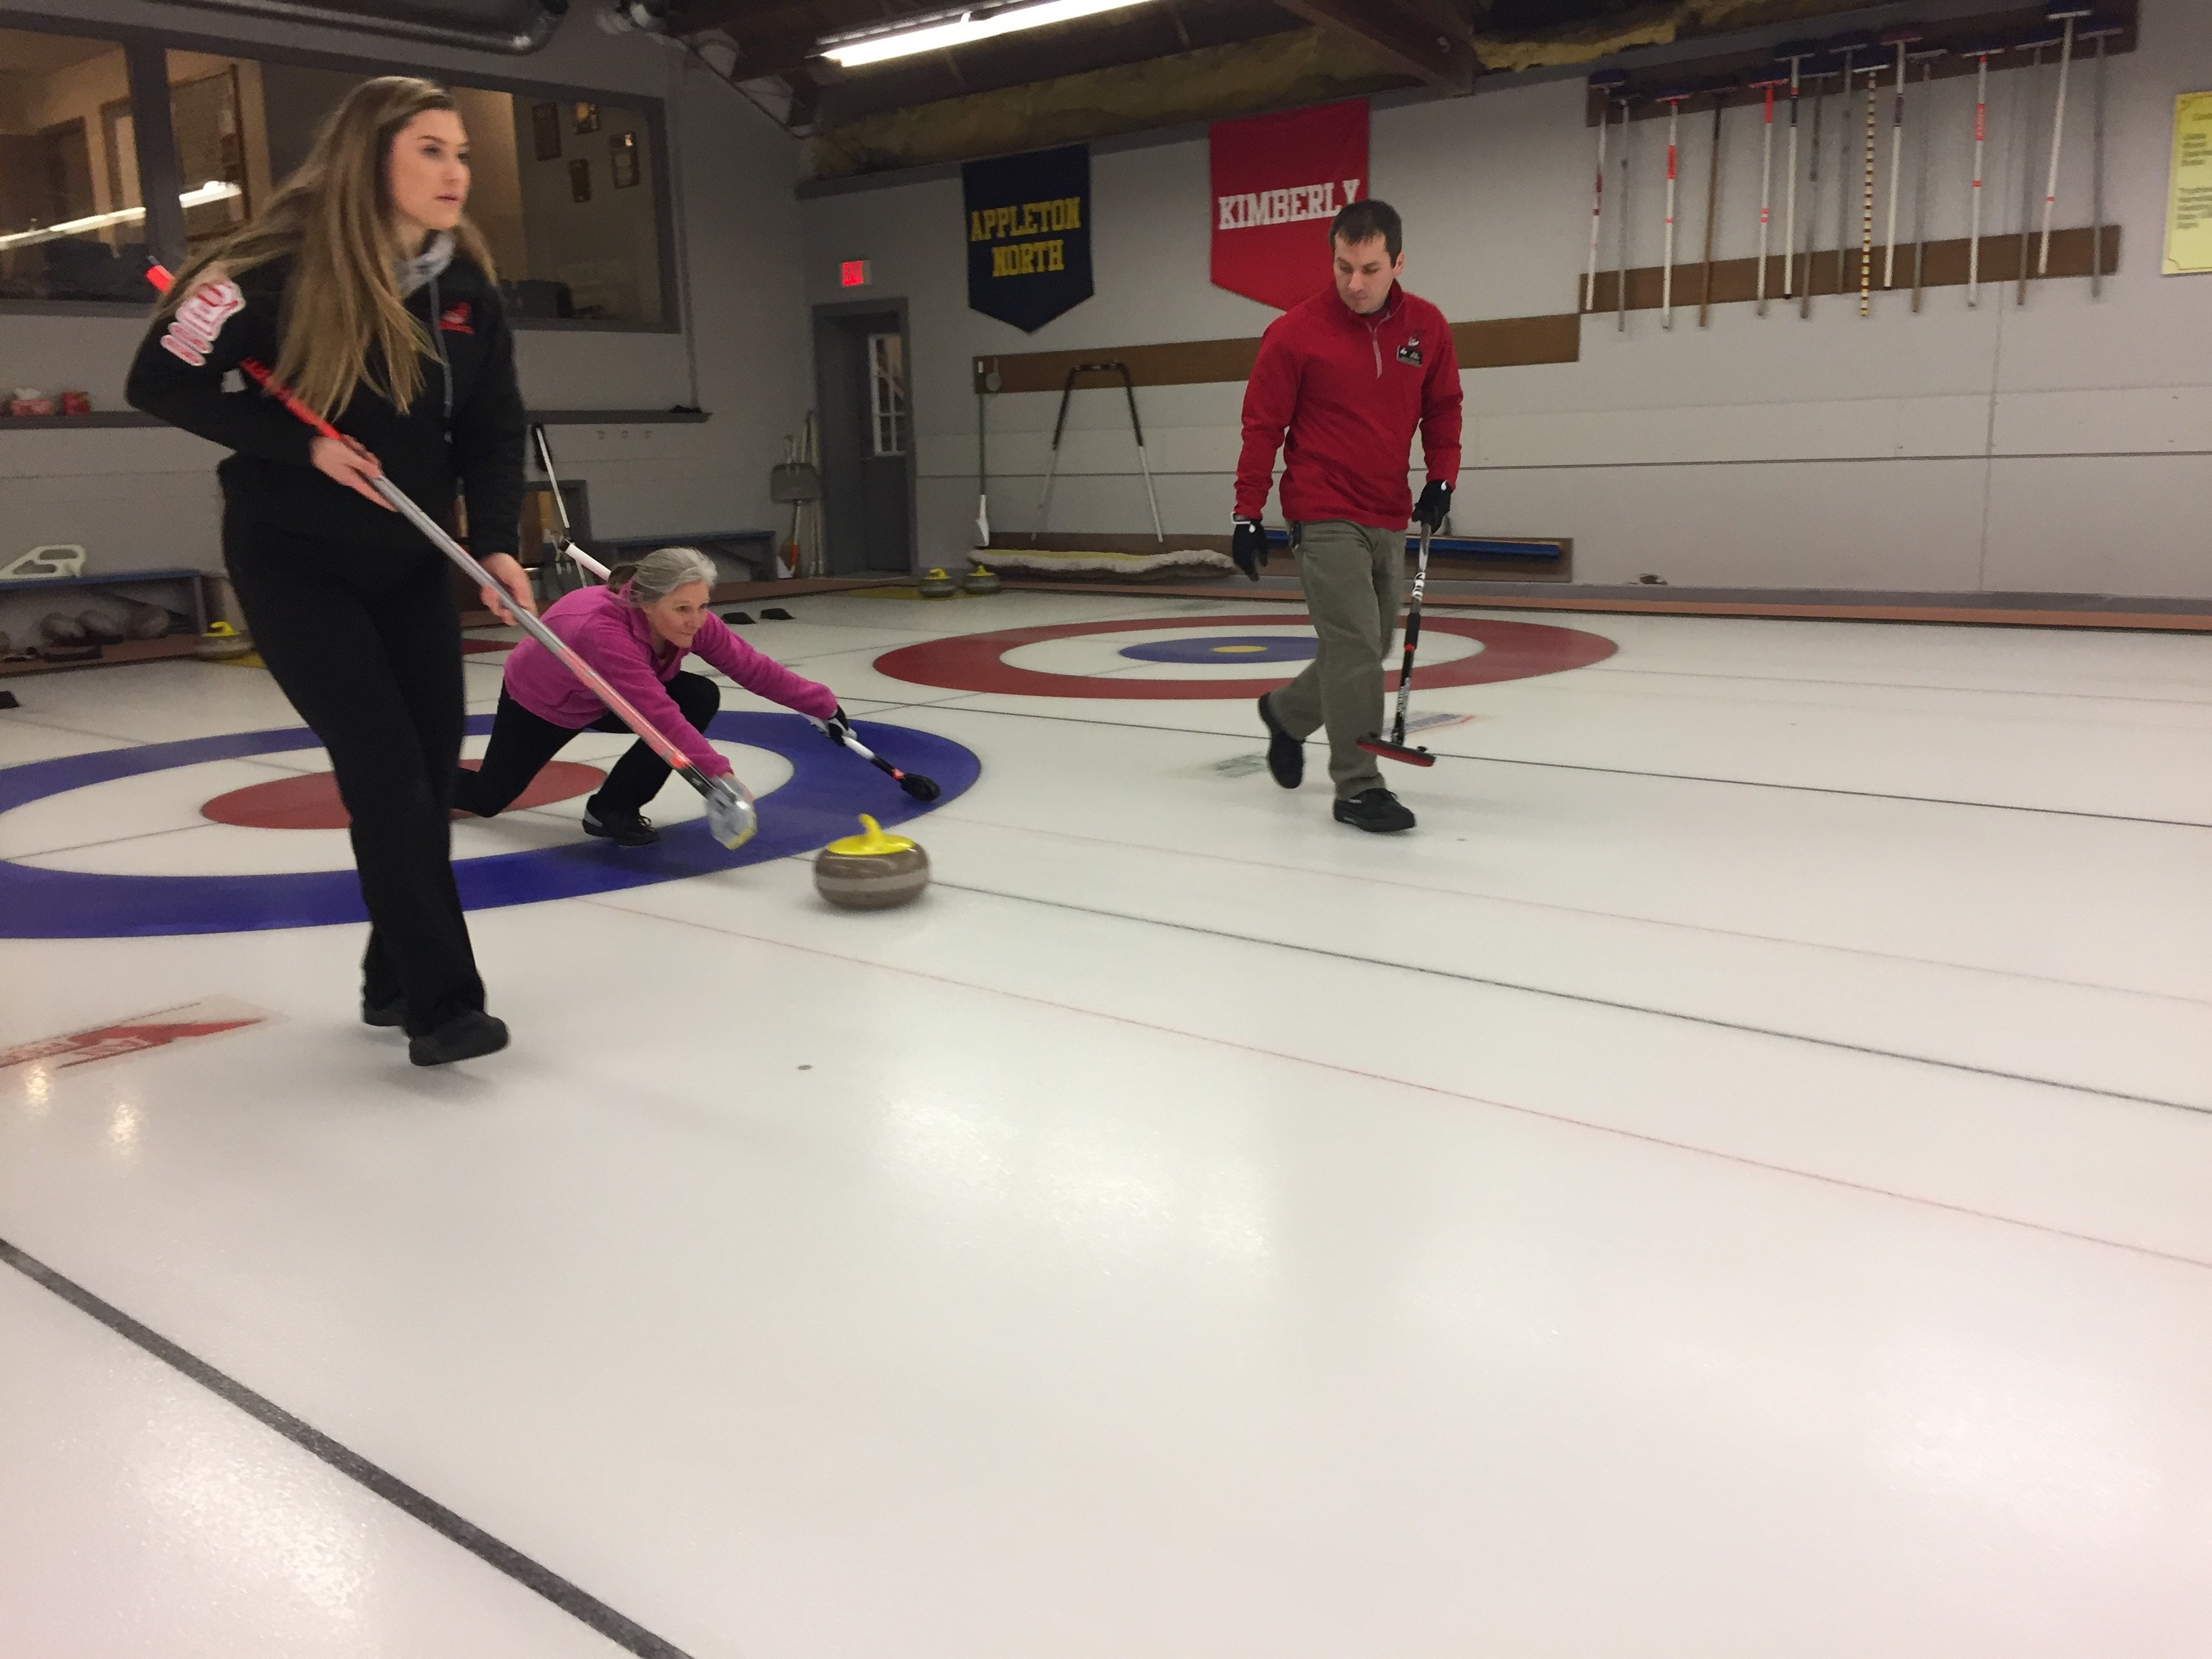 Members of the Appleton Curling Club practicing their skills ahead of the 2018 Winter Olympics, February 8, 2018, (WLUK/Justin Steinbrinck)<p></p>